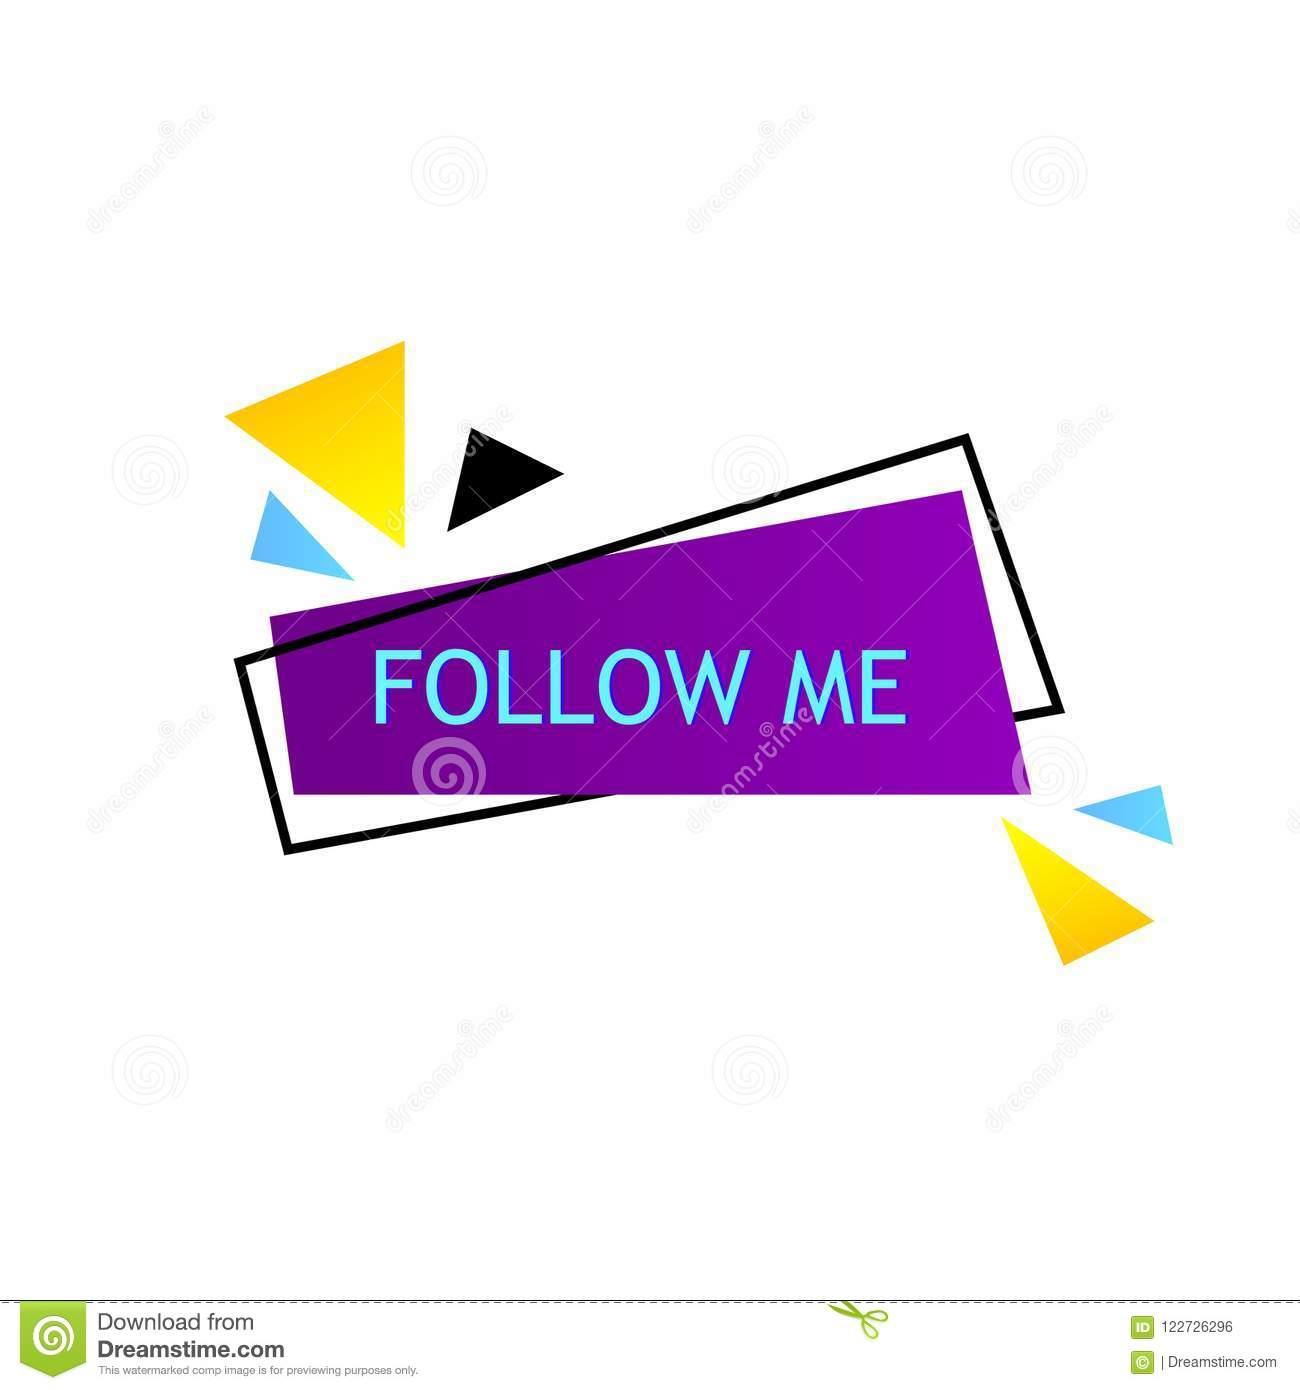 follow me on bright background with random items template for social